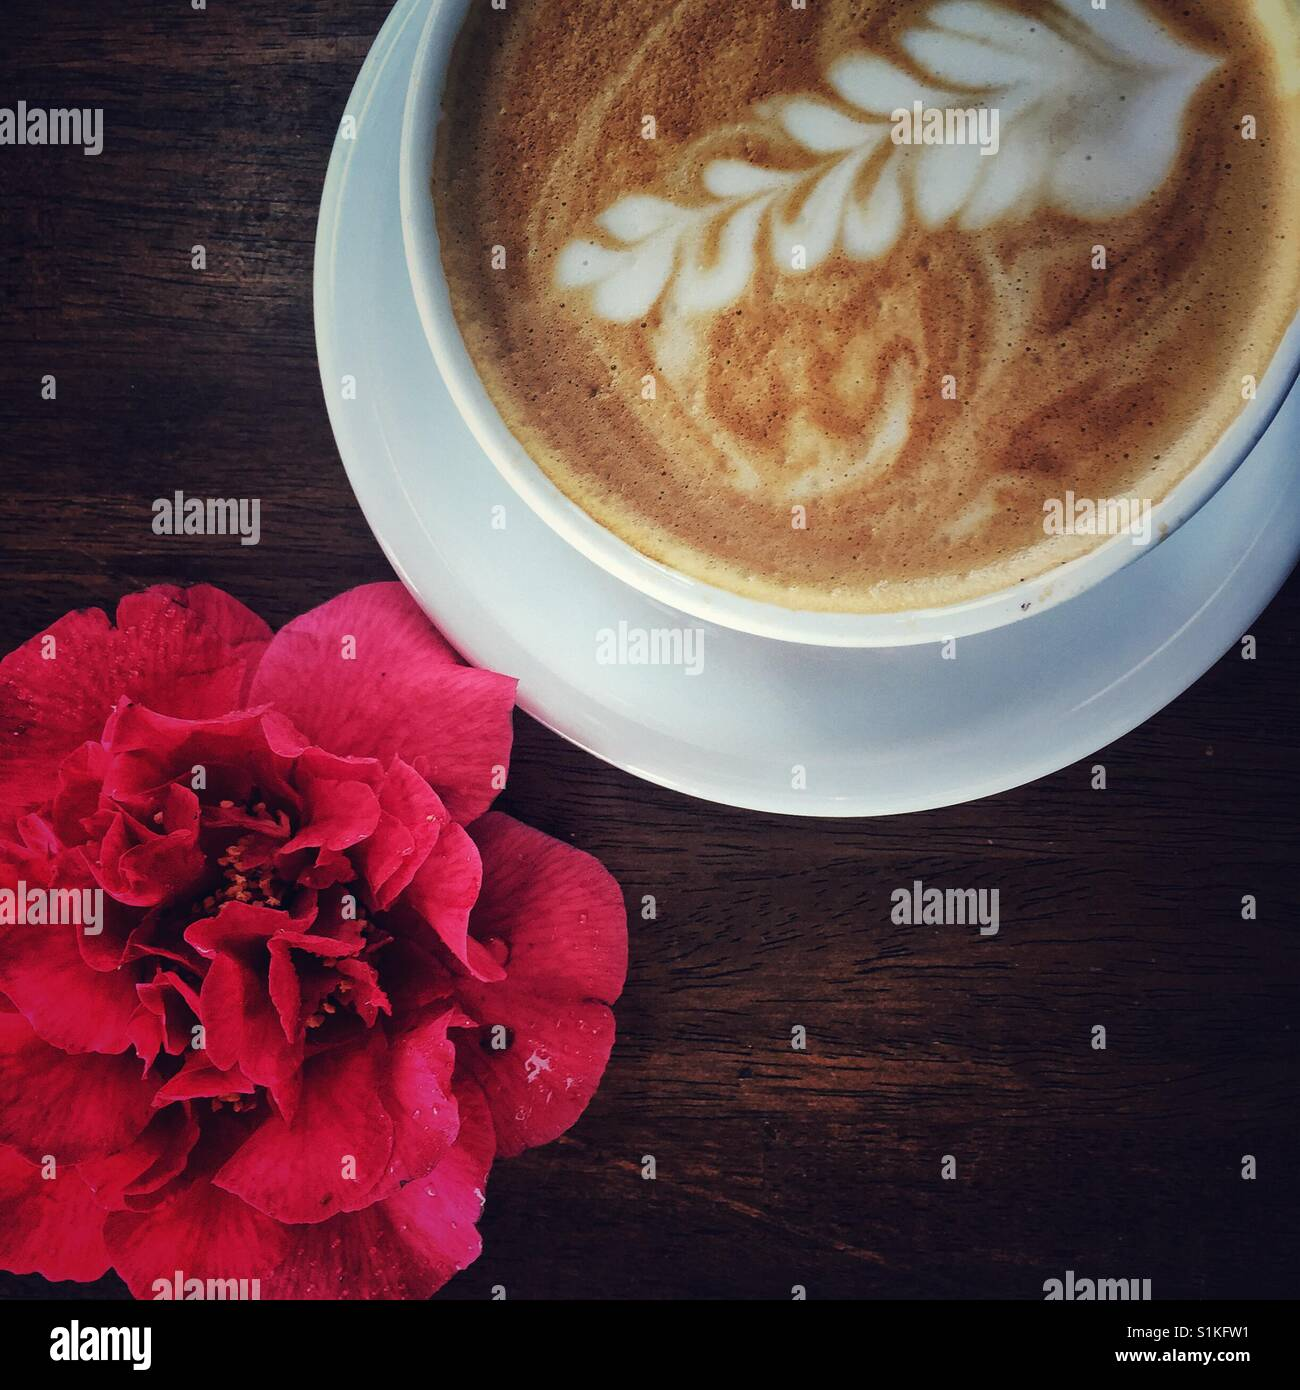 Cup of cappuccino with artsy design on the foam and camellia blossom on the table - Stock Image